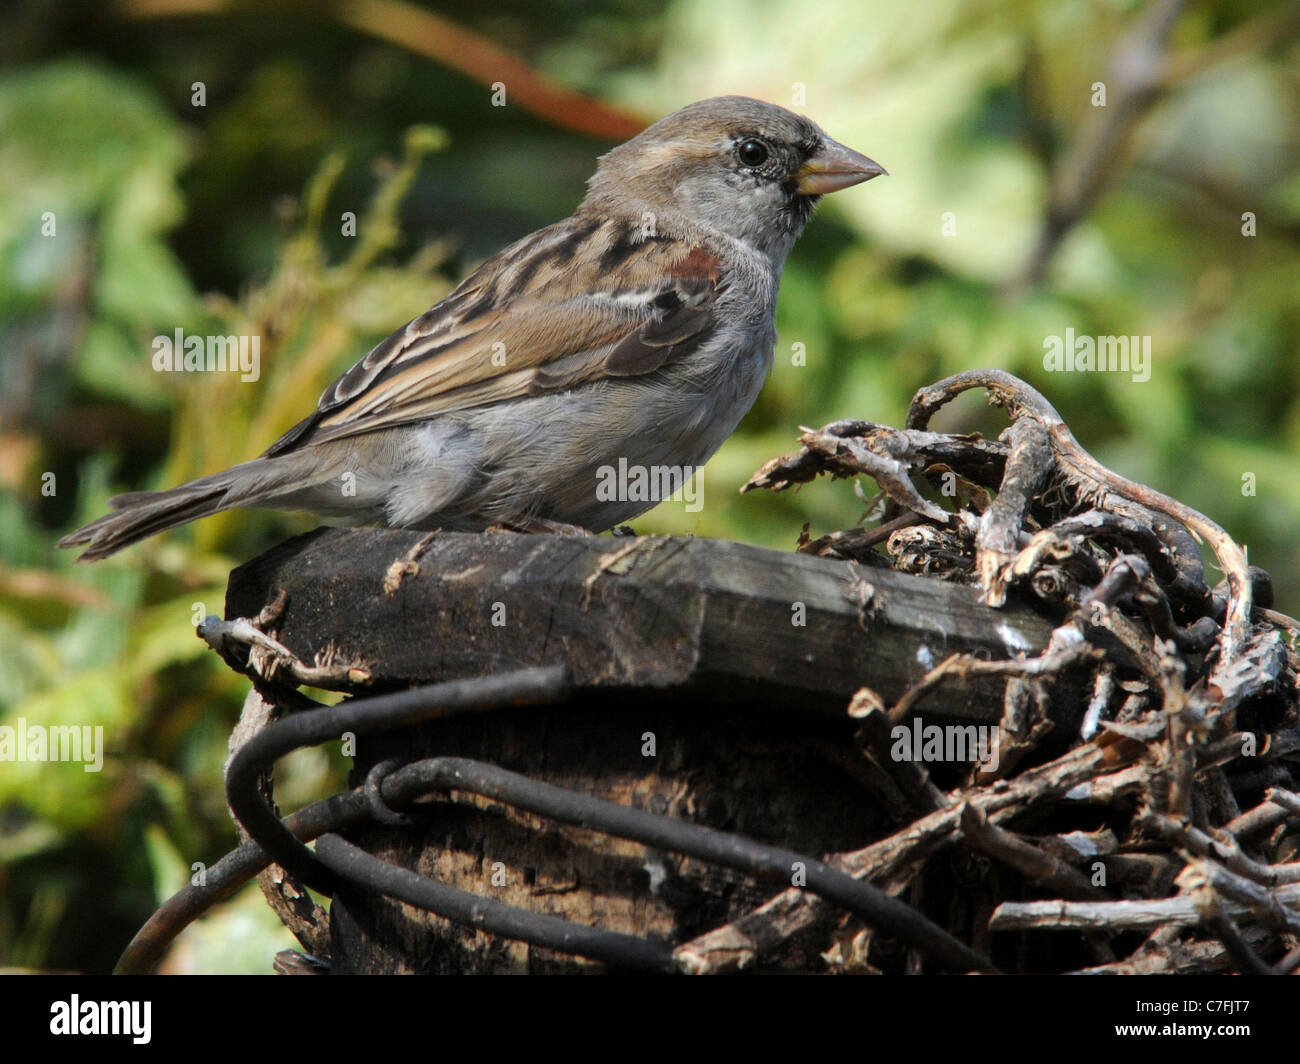 A common house sparrow nest building in an English garden - Stock Image